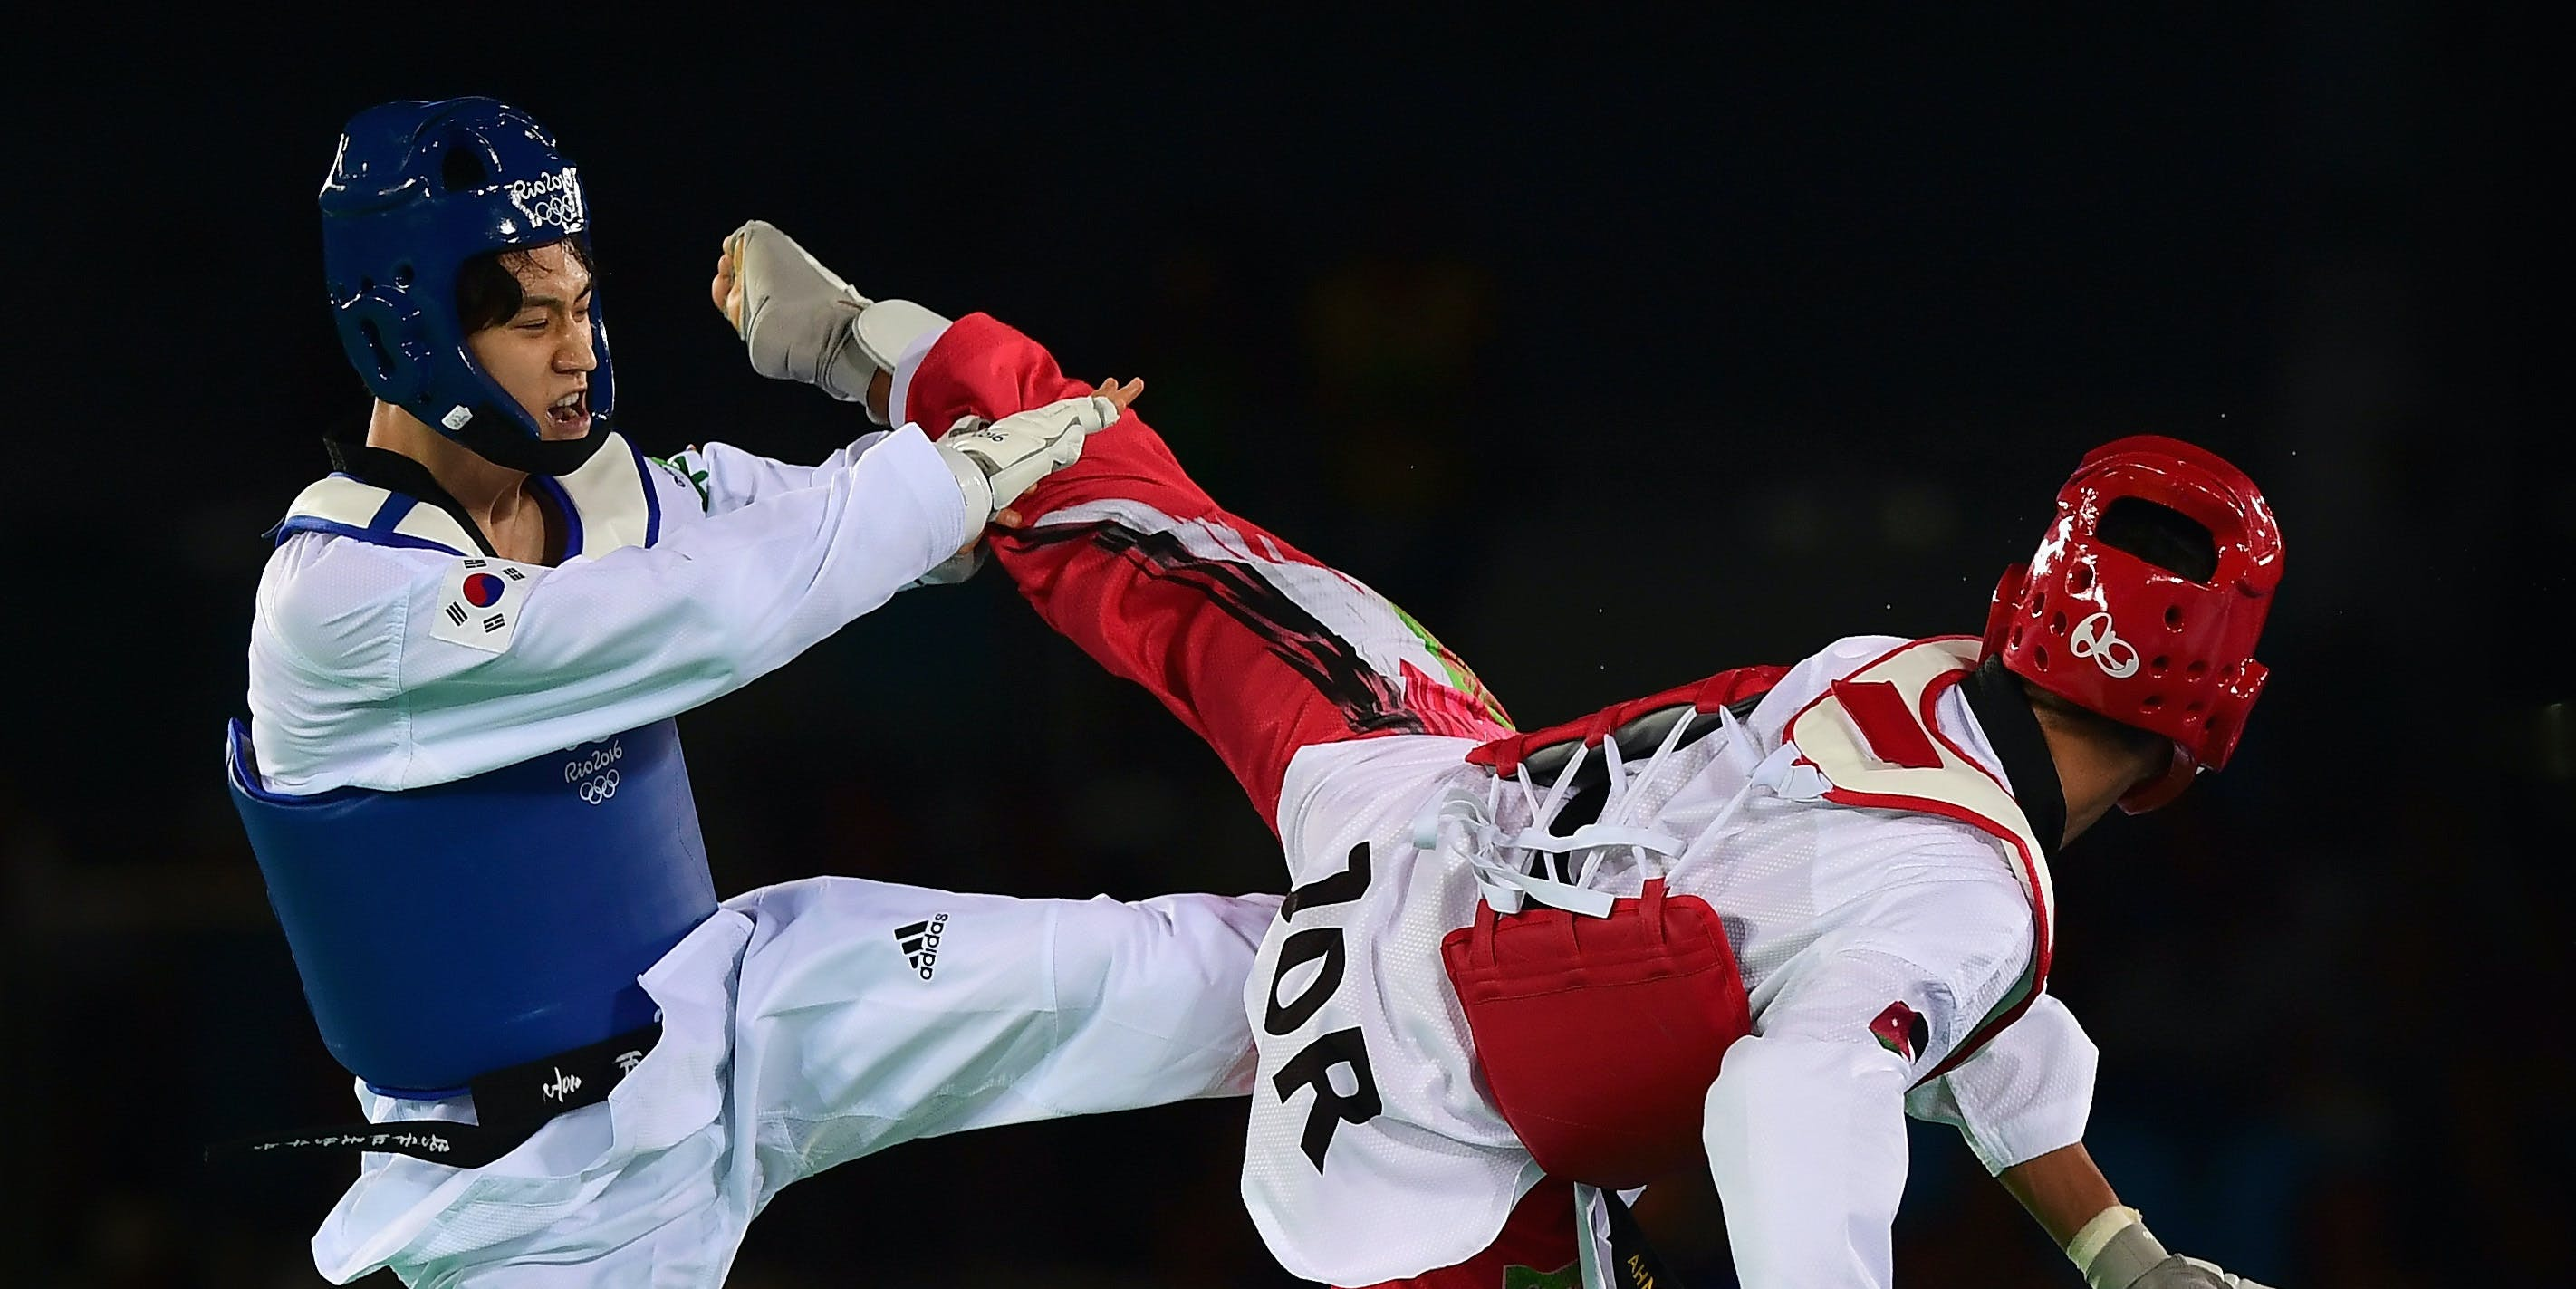 RIO DE JANEIRO, BRAZIL - AUGUST 18:  Ahmed Abughaush of Jordan (Red) competes against Daehoon Lee of Republic of Korea during the Mens 68kg Taekwondo quarter final contest at Cairoca Arena 3  on August 18, 2016 in Rio de Janeiro, Brazil.  (Photo by Laurence Griffiths/Getty Images)